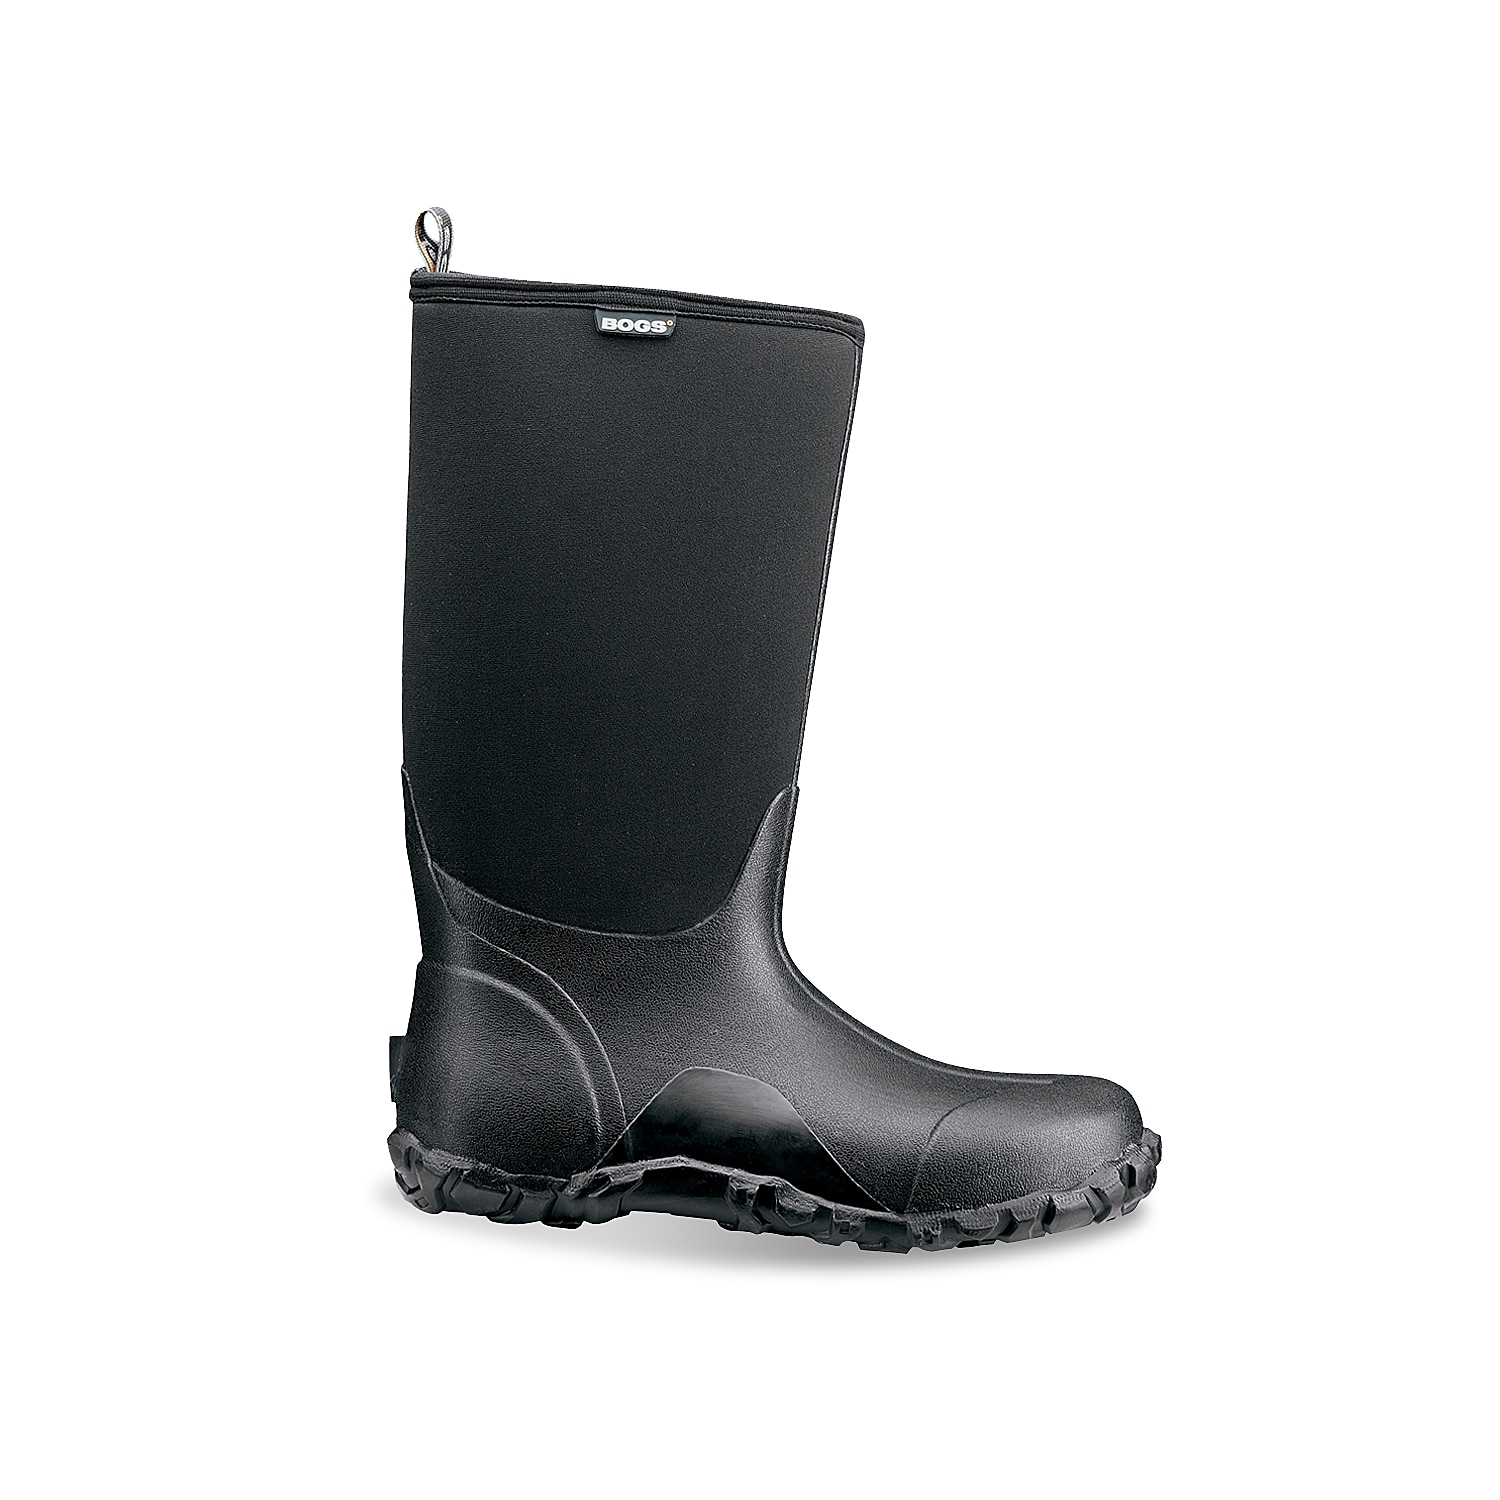 Weather won\\\'t stop you when you wear the Classic High winter boots from Bogs. These comfort-rated snow boots are designed to provide excellent traction on any surface, while four way-stretch insulation and a contoured fit improve wearability.